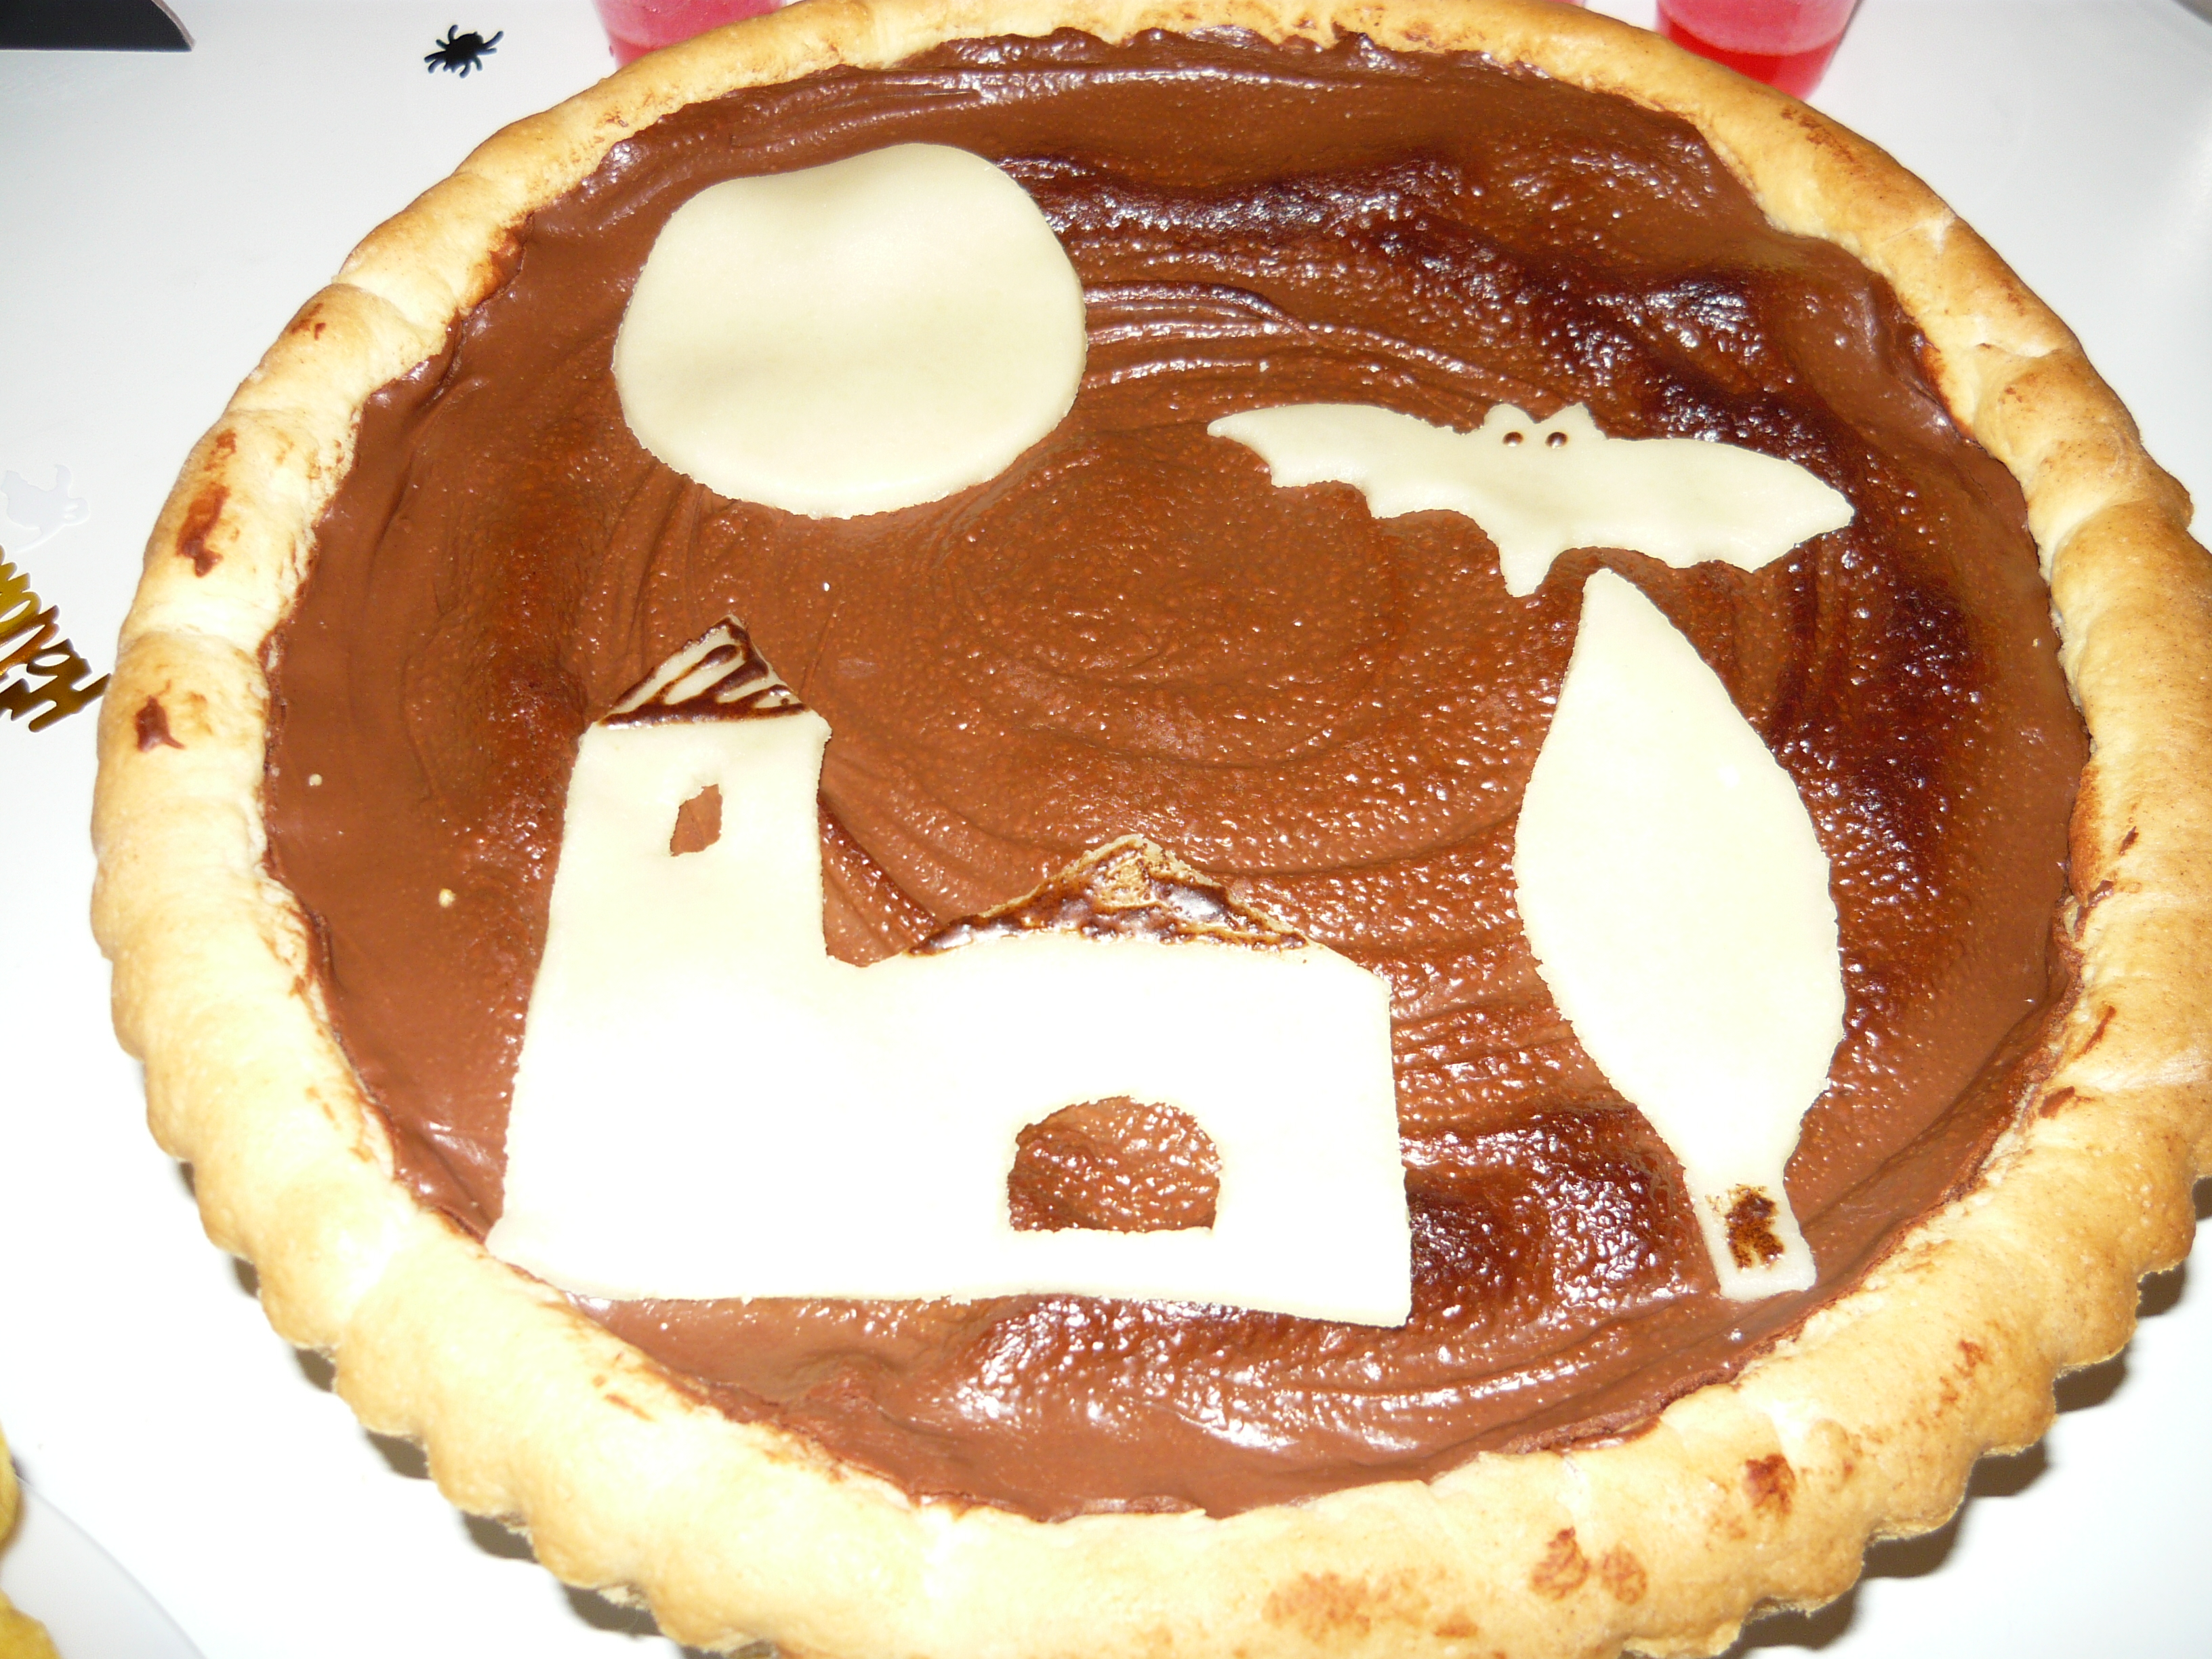 Nutella crostata with marzipan decorations